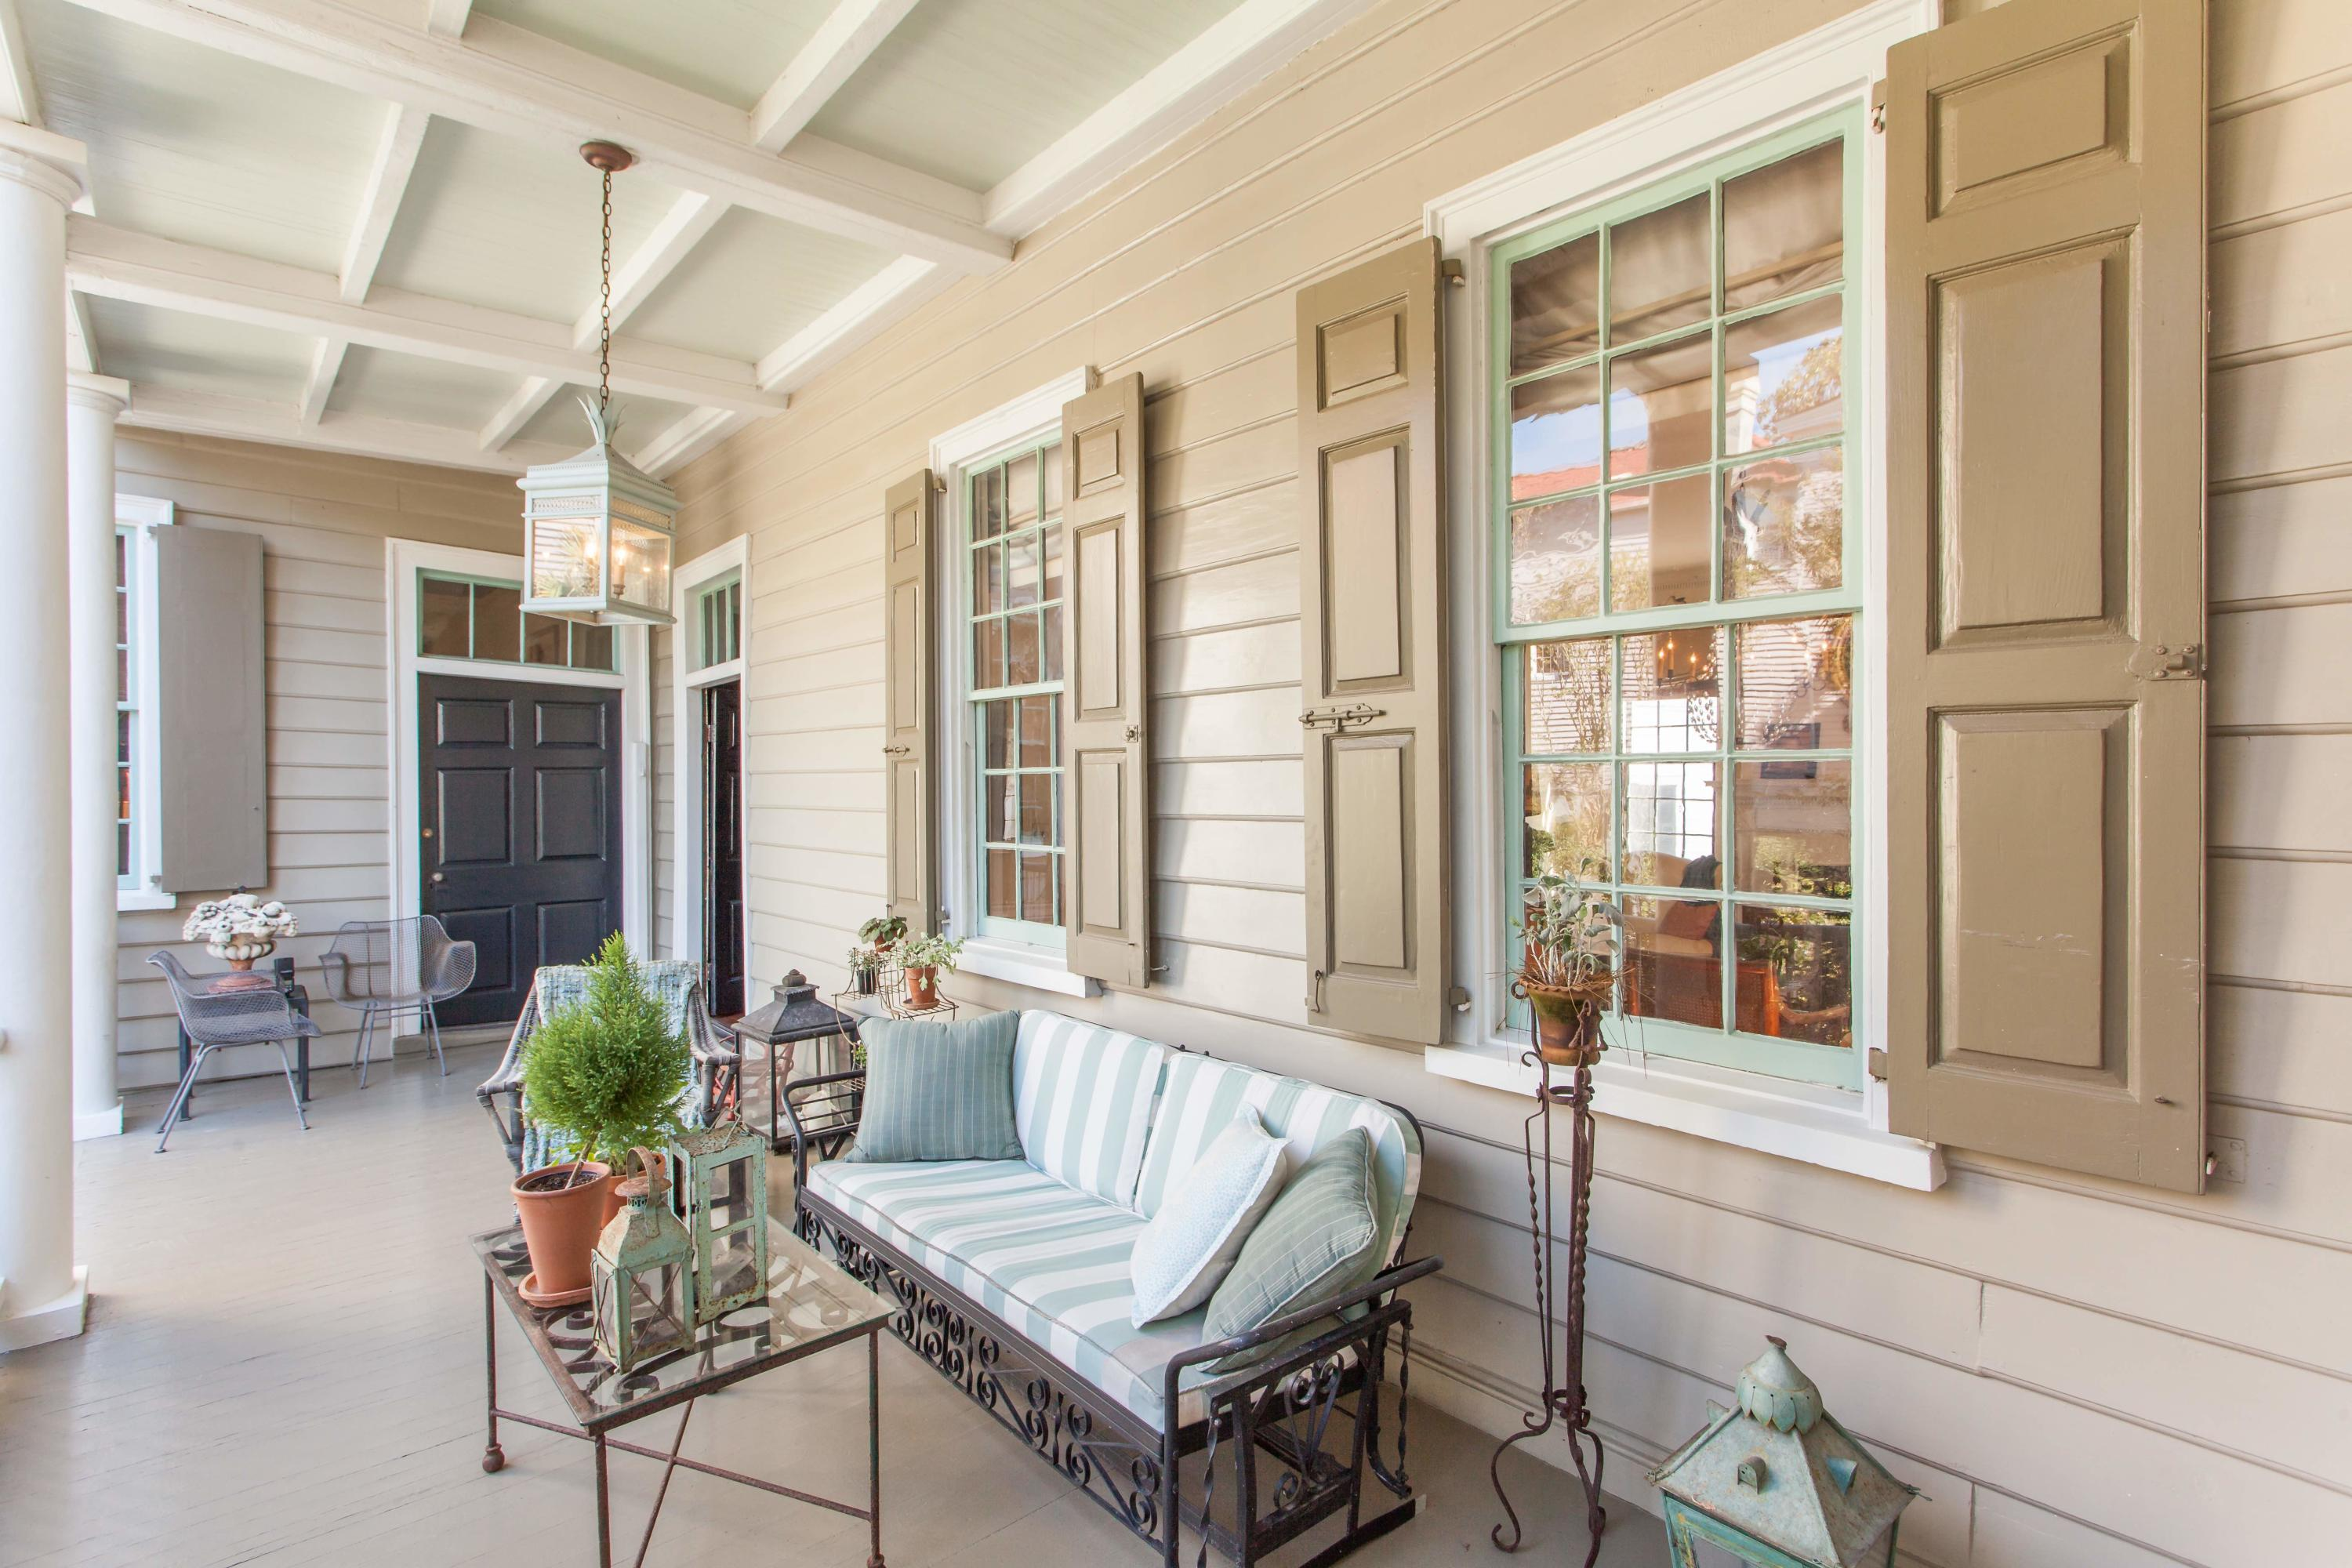 South of Broad Homes For Sale - 58 South Battery, Charleston, SC - 53